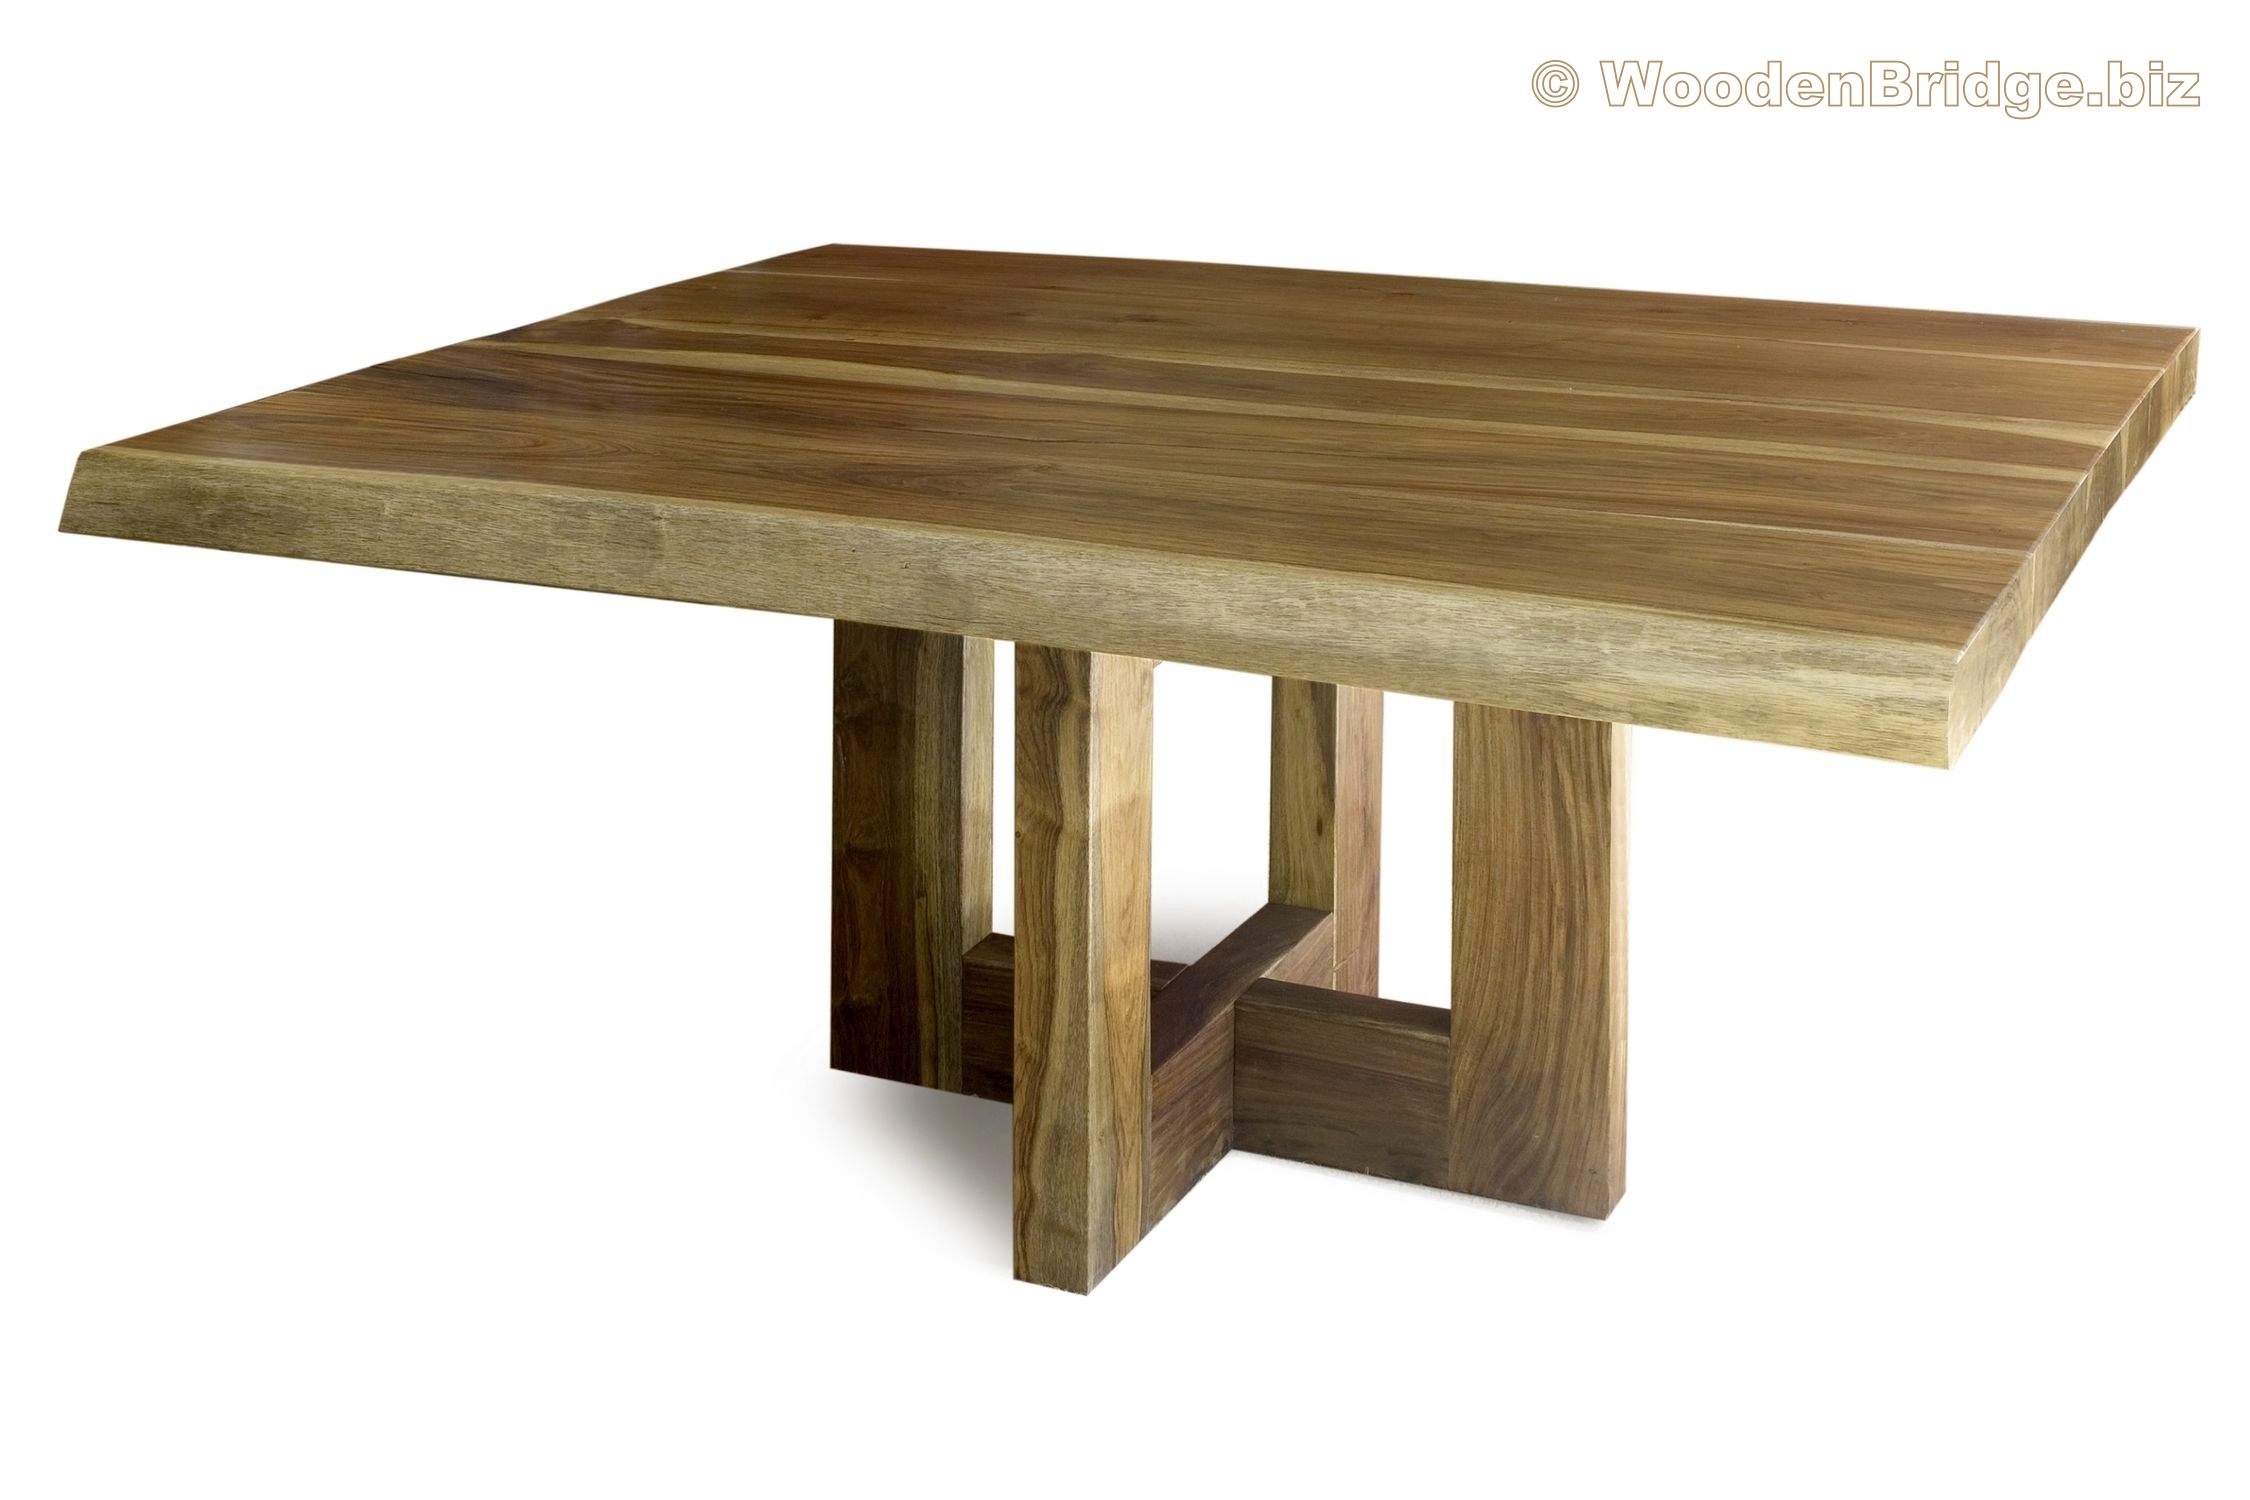 Reclaimed Wood Dining Table Ideas - 2250 x 1500 1